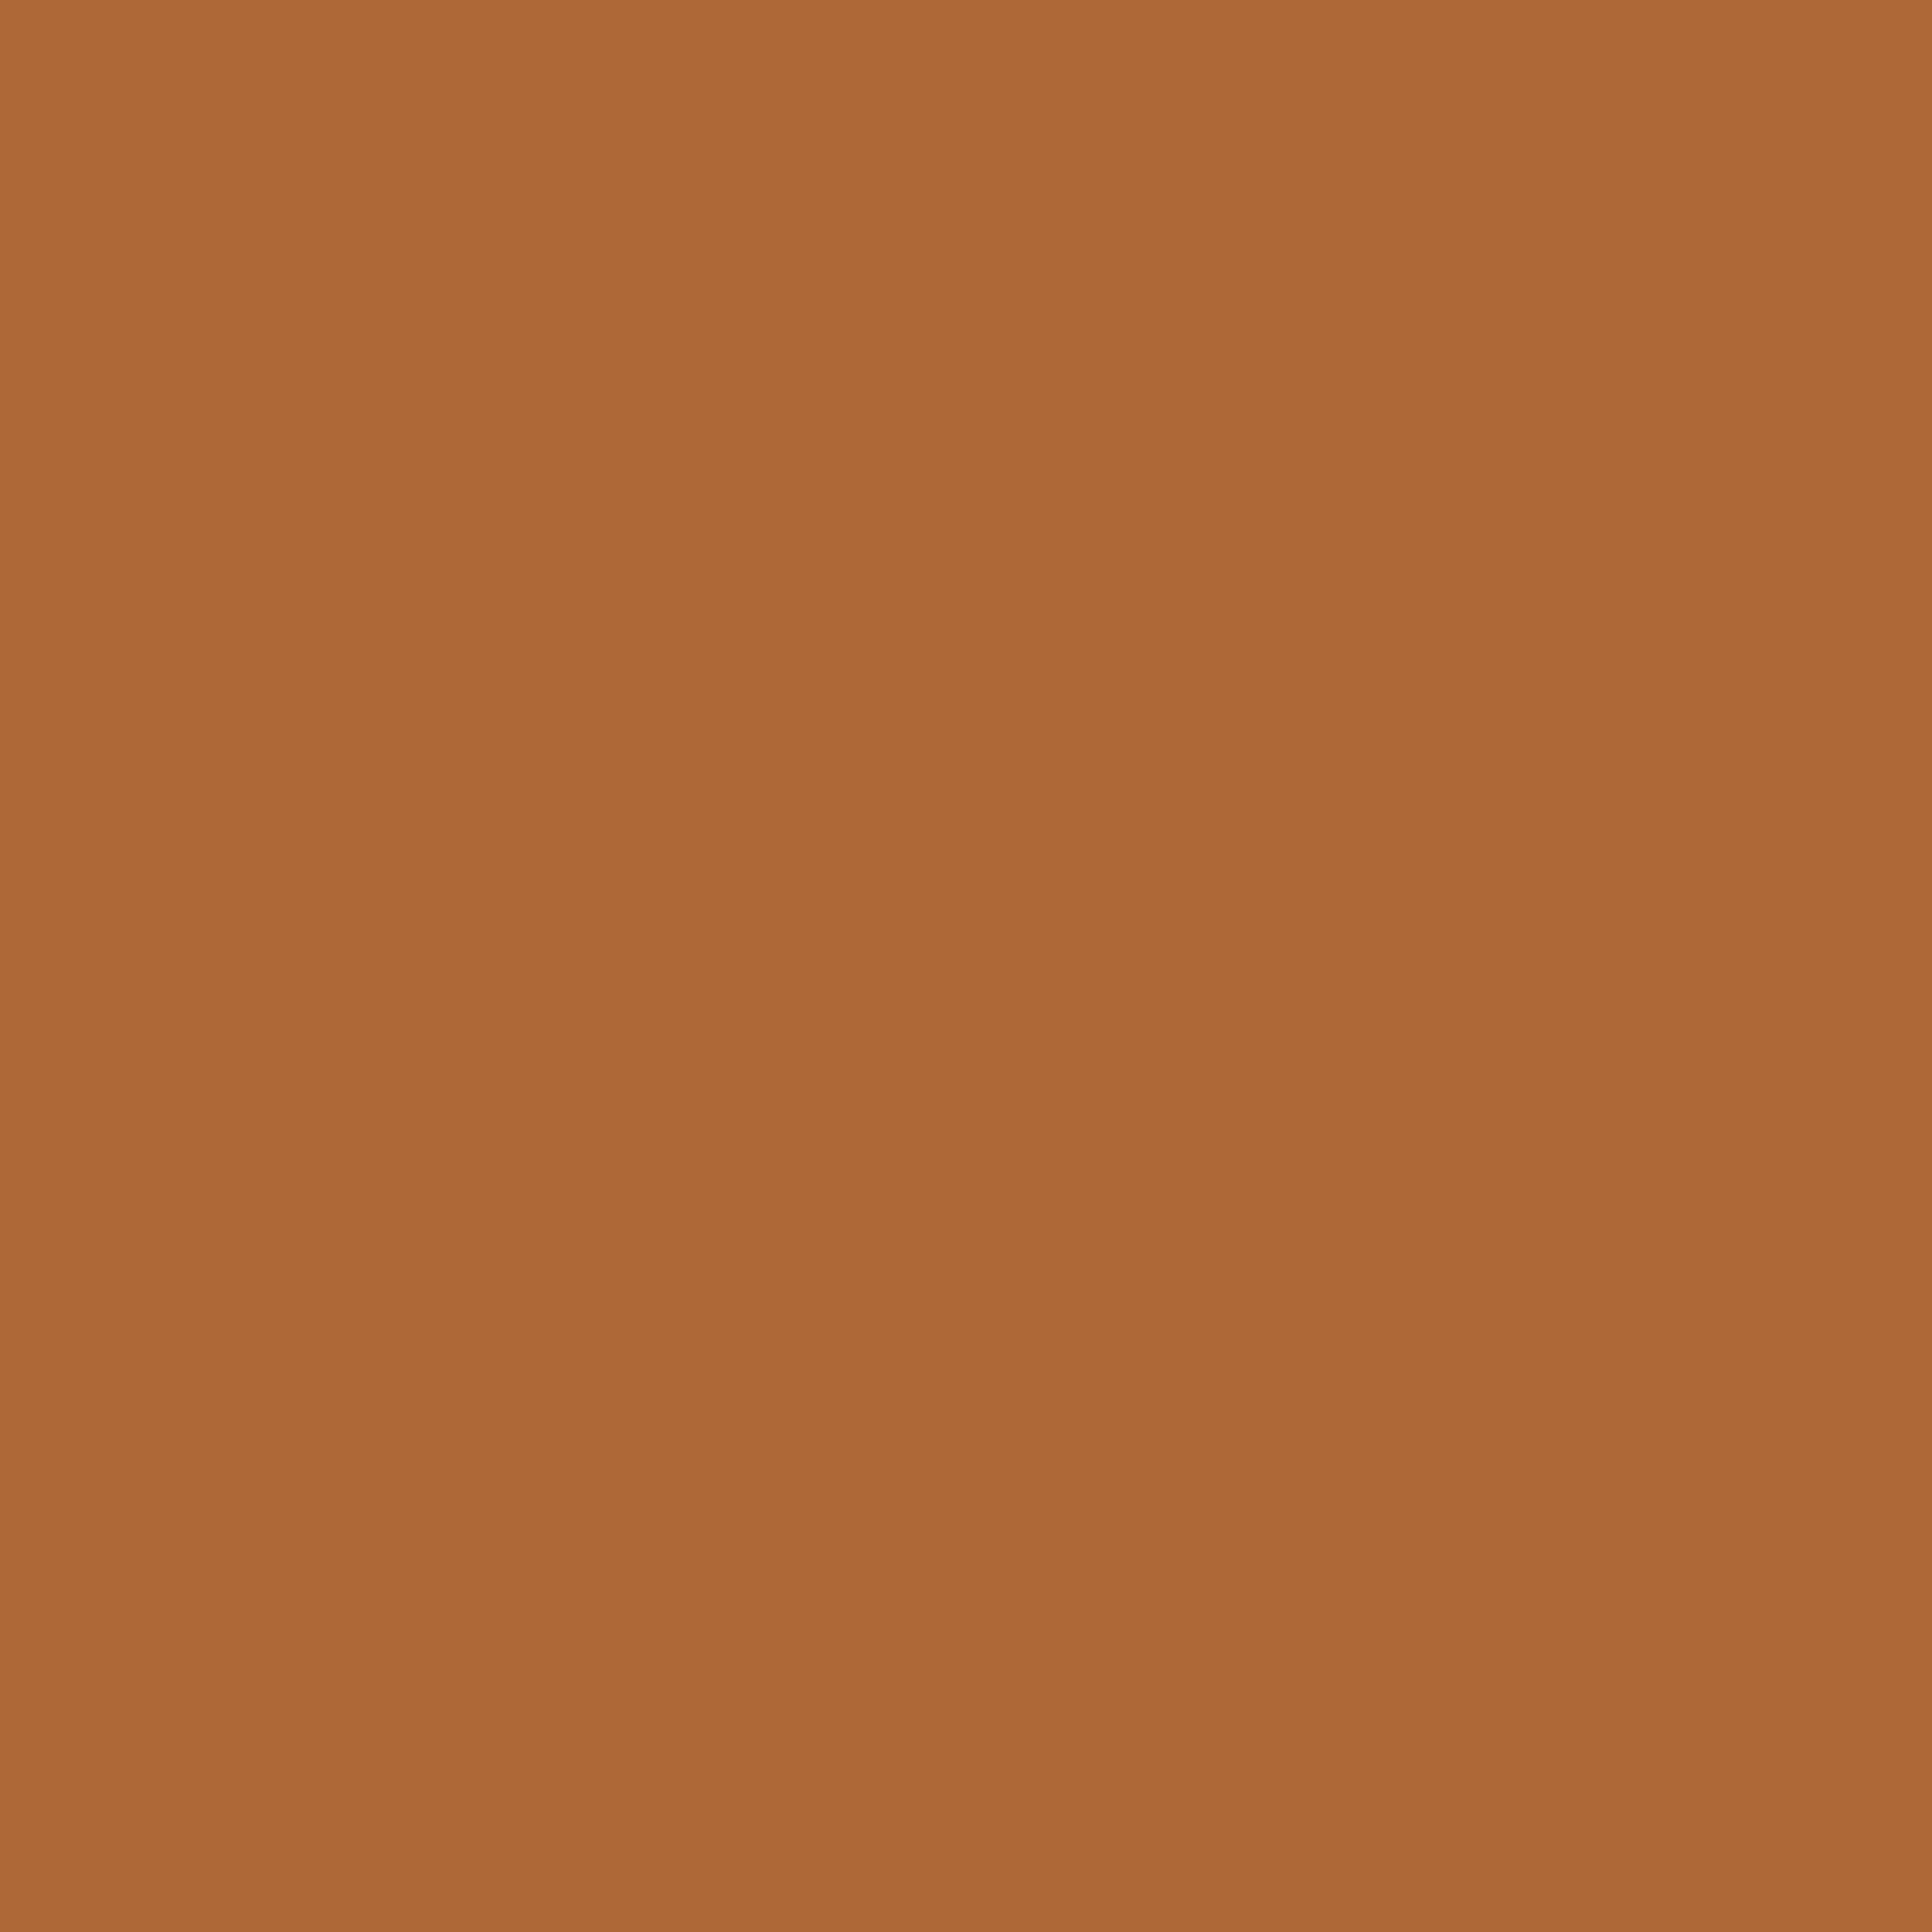 2048x2048 windsor tan solid color background